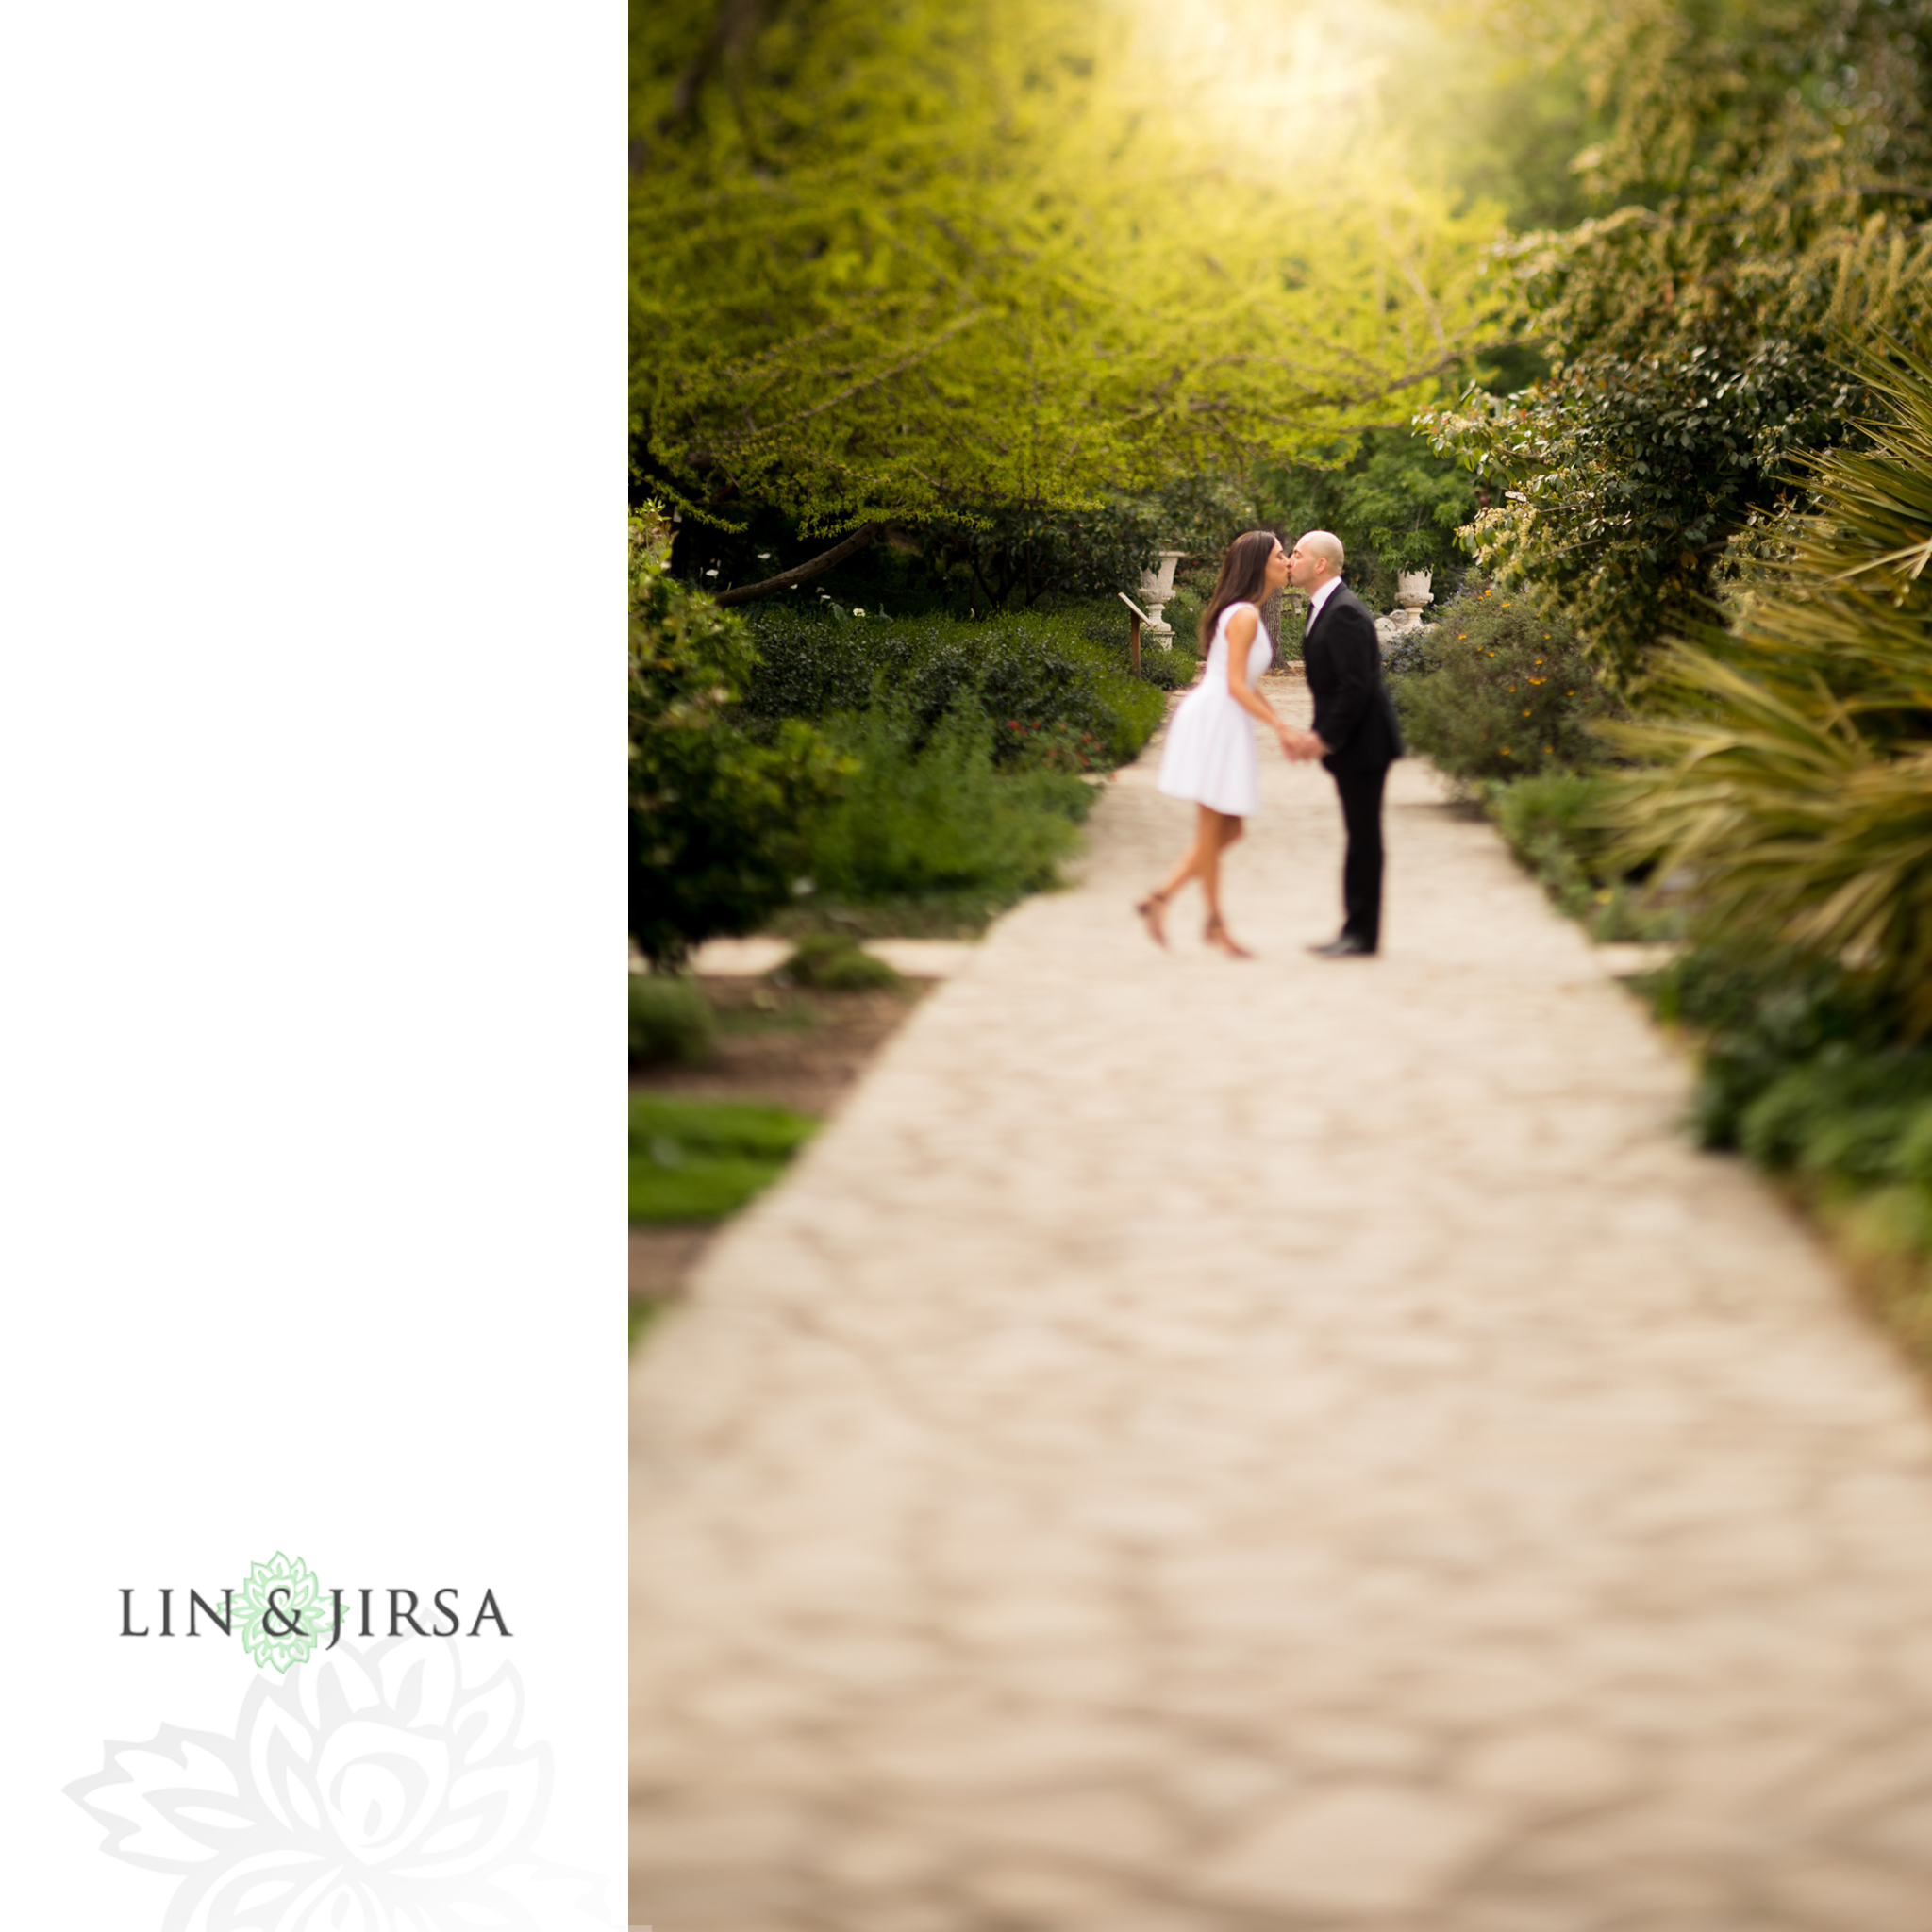 06-Los-angeles-arboretum-engagement-photography